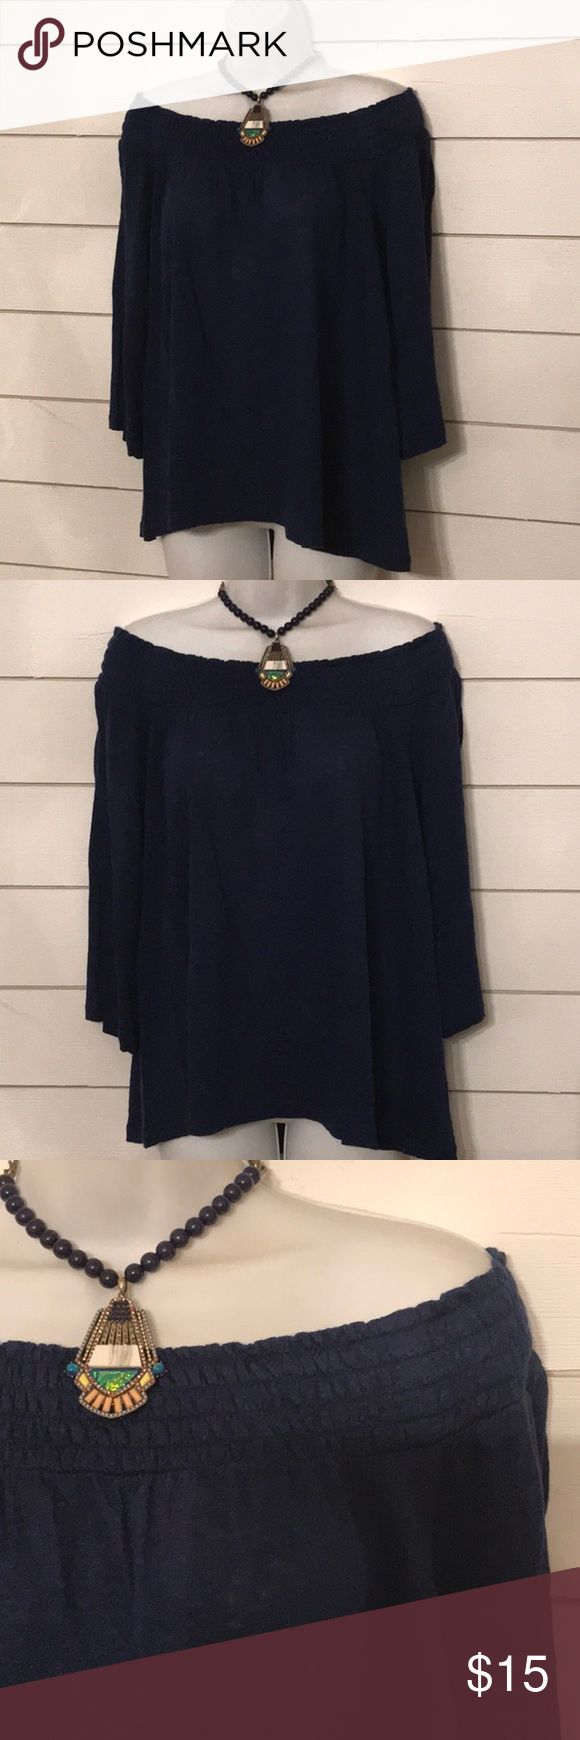 Caslon Drop Shoulder Navy Smocked Neckline Top Caslon from Nordstrom, navy, large petite, cotton knit, 3/4 sleeve, lightweight fabric, off the shoulder style top. Perfect condition.  Fast shipping, from a smoke-free home. Caslon Tops